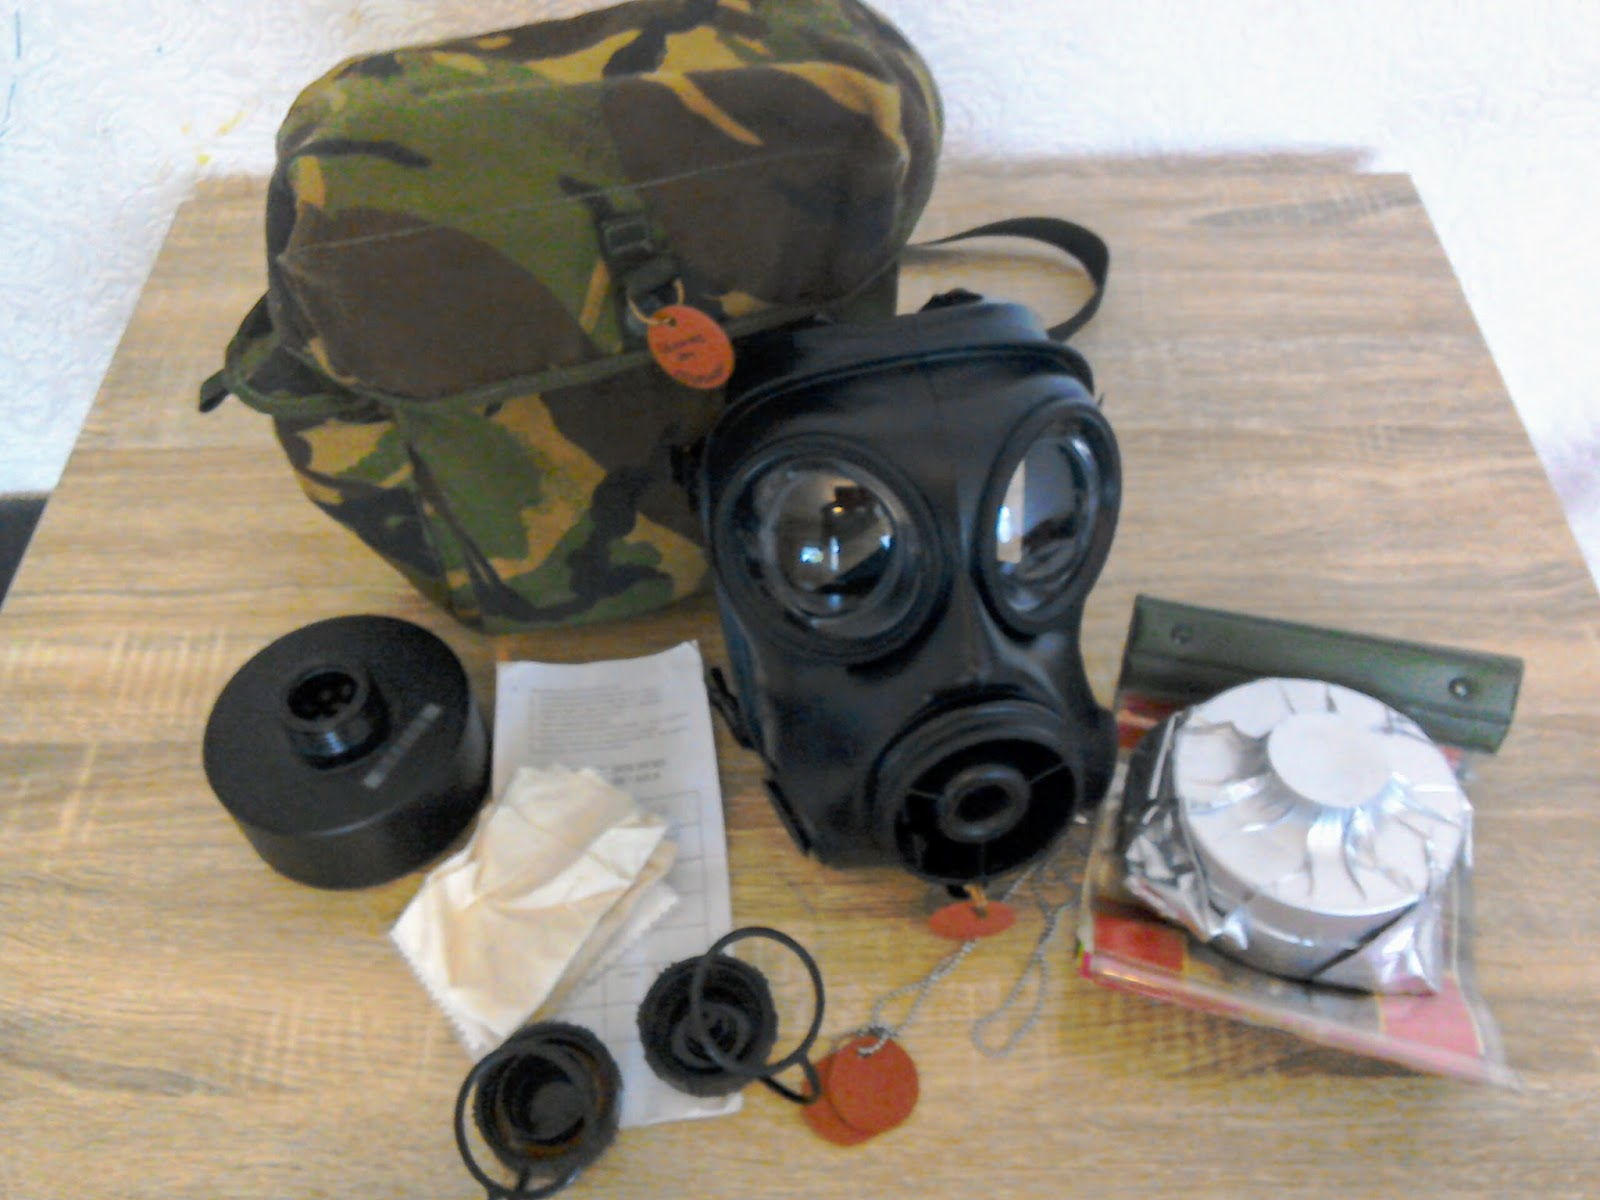 Mr Aphoristic British S10 Nbc Respirator Part 2 2009 Wiring Harness Ebay Almost A Complete Kit